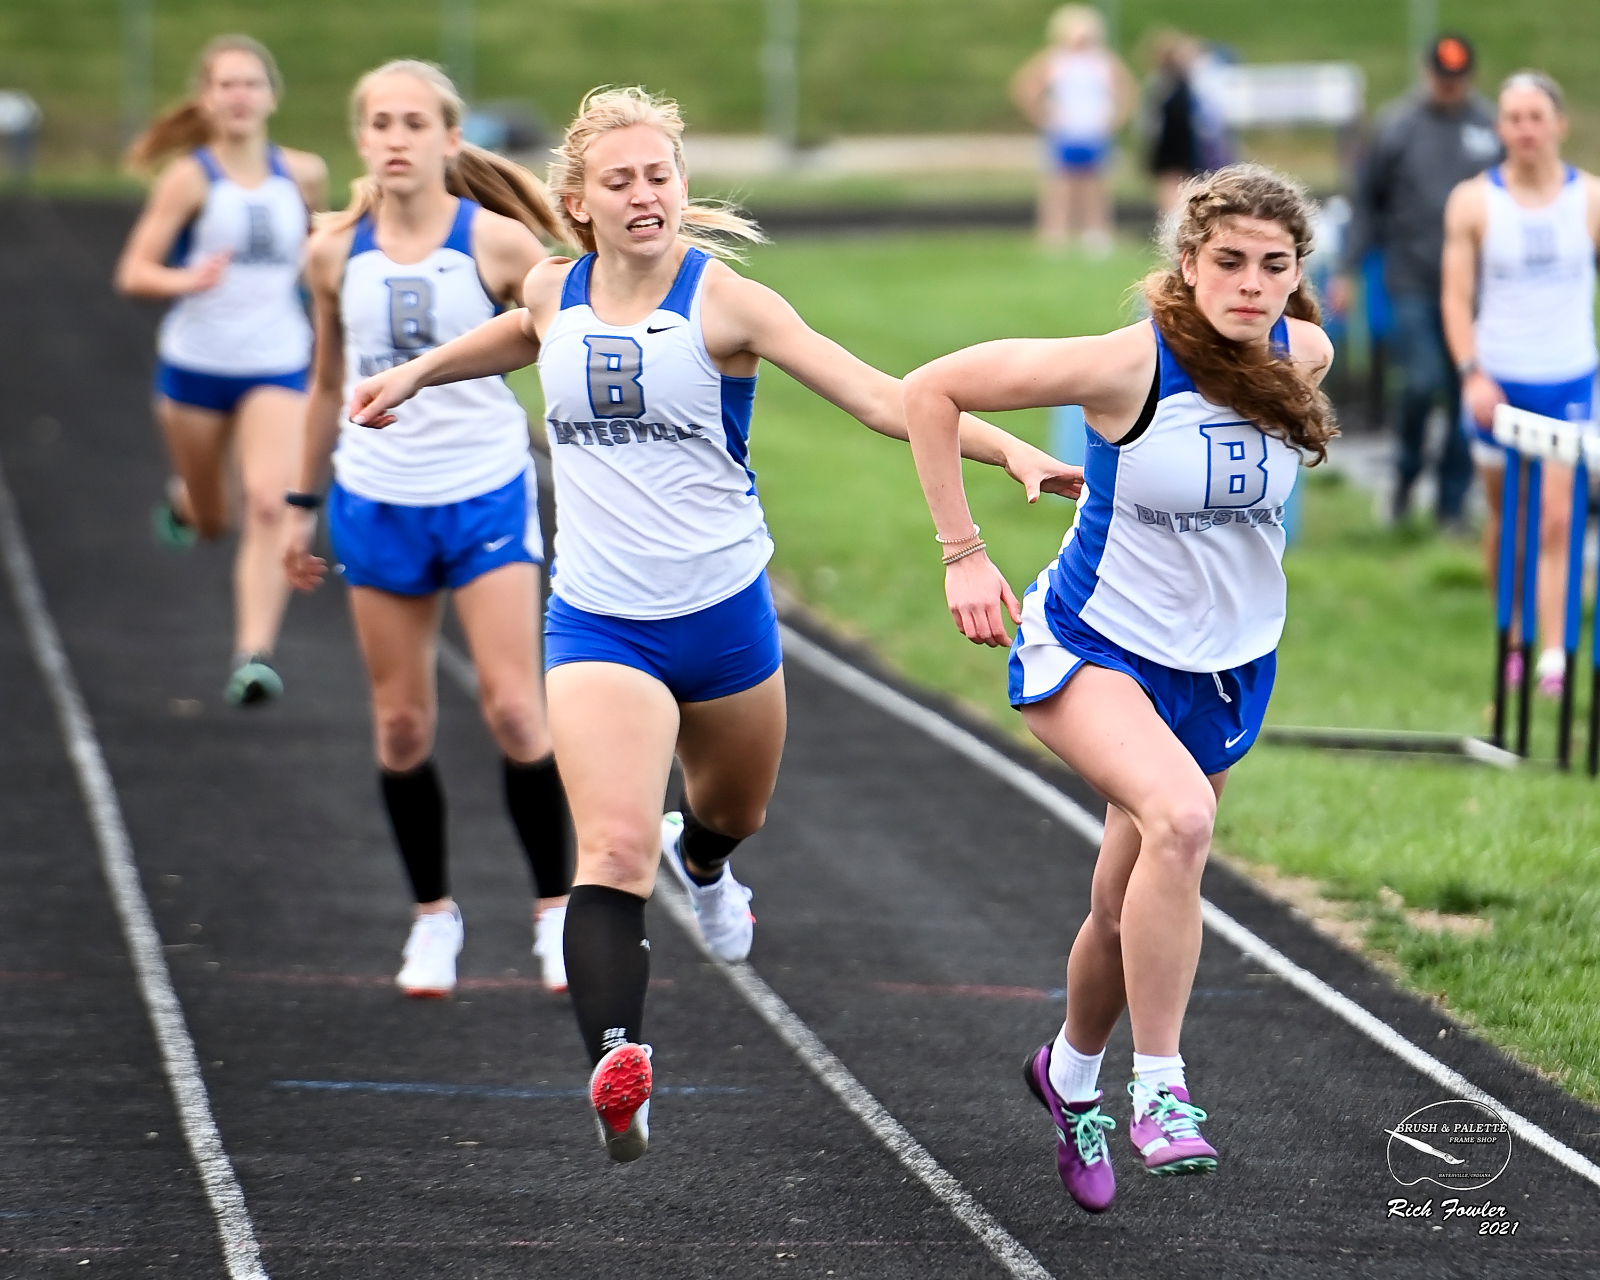 BHS track and field, softball and tennis busy early in spring